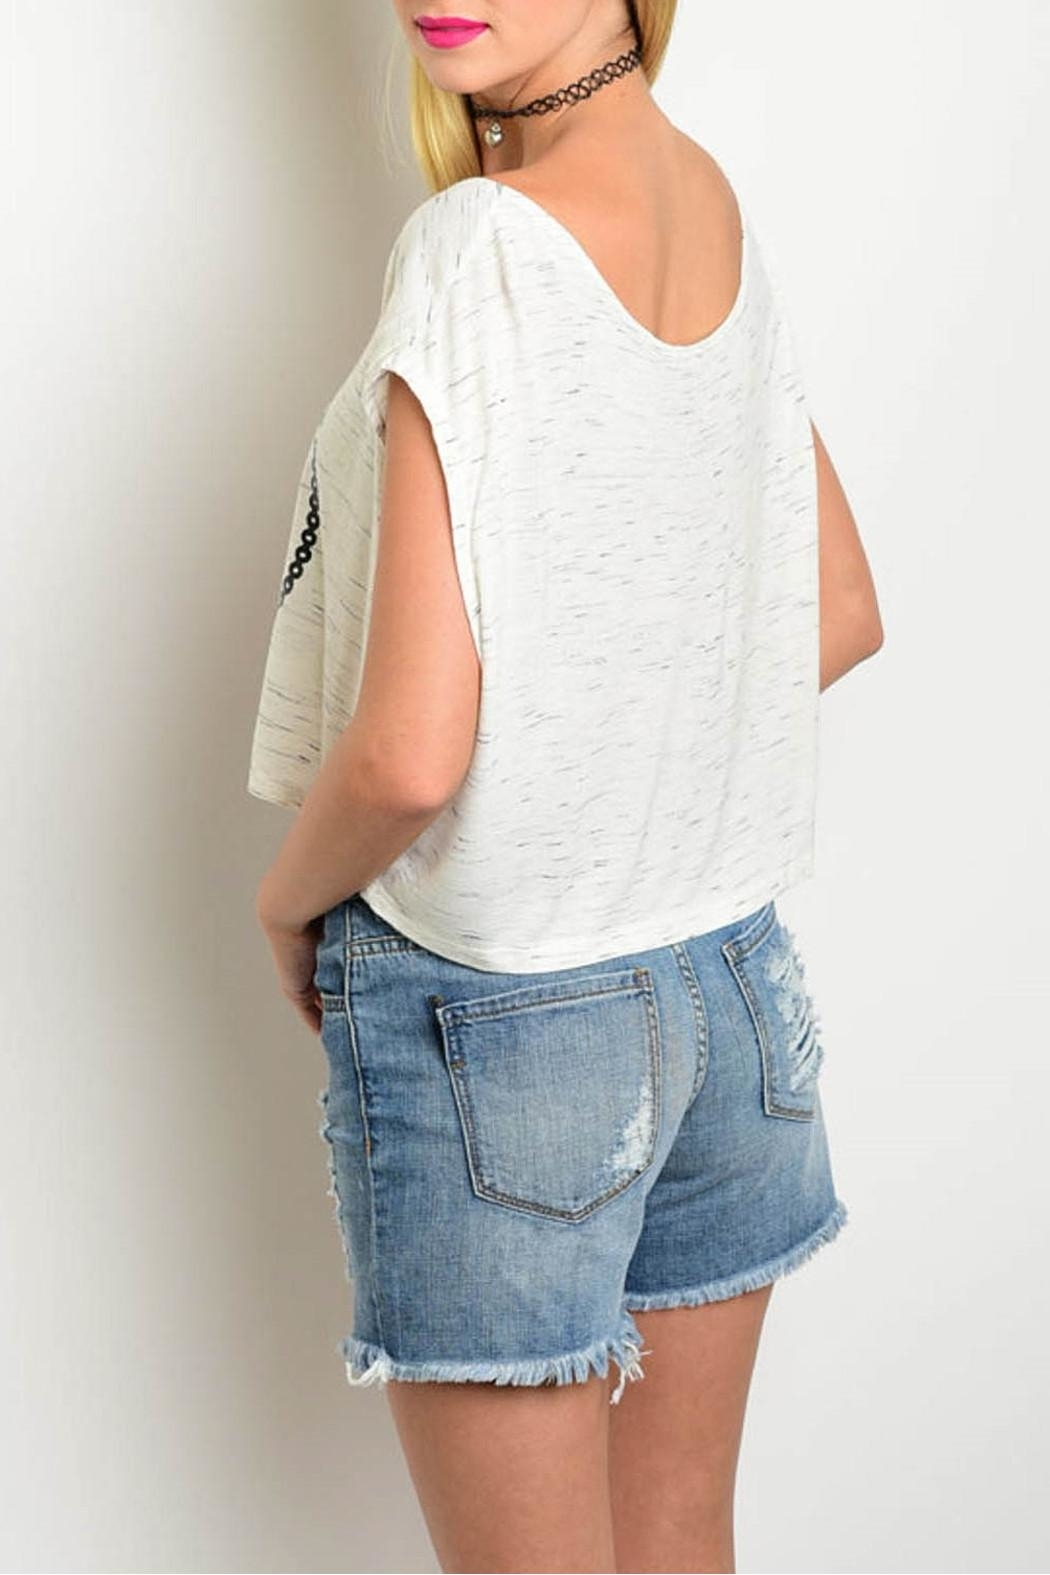 Viola  Anchors White Top - Front Full Image